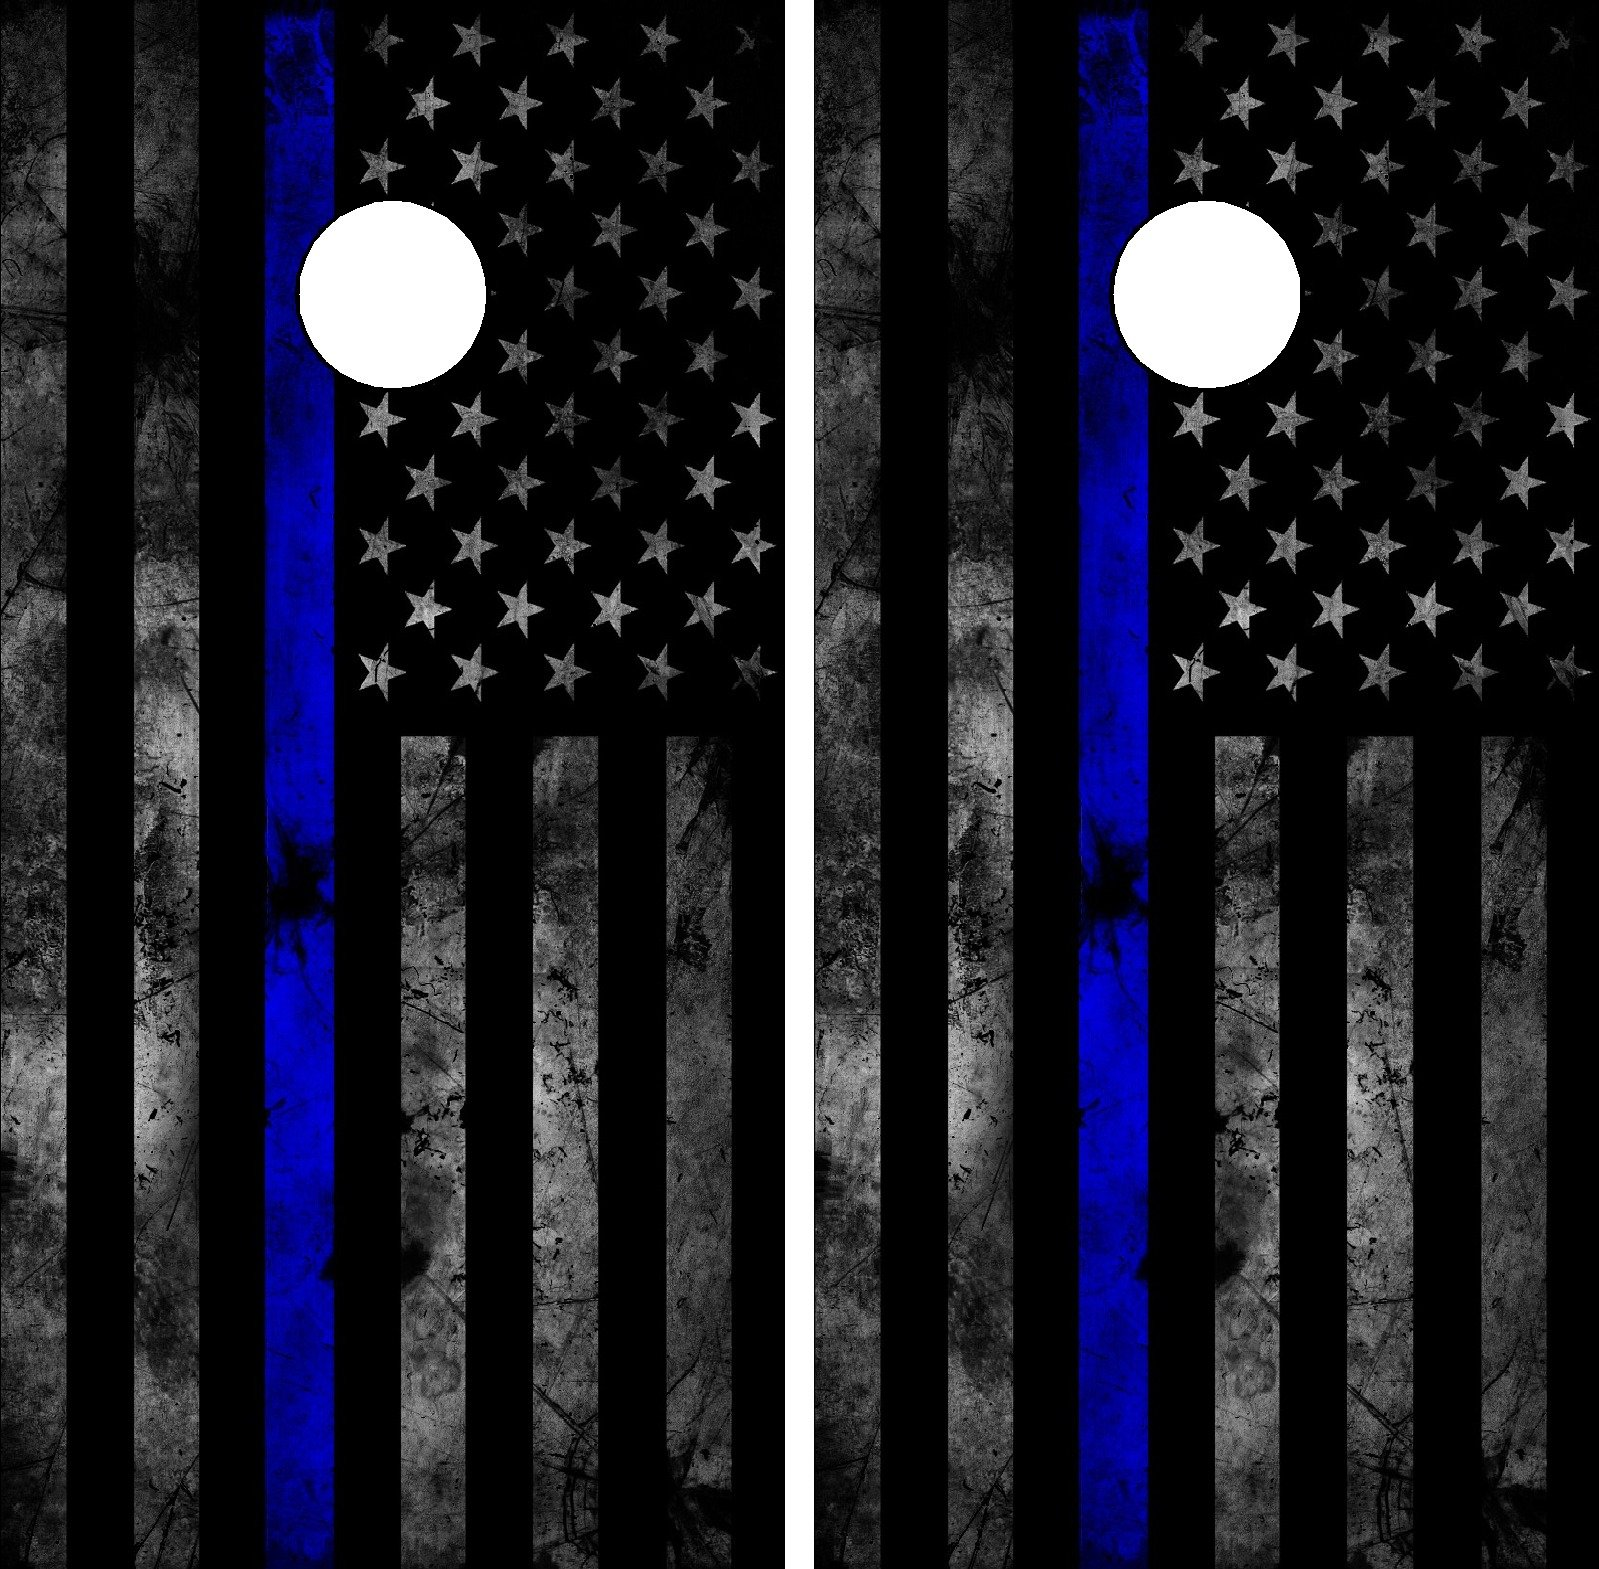 C202 American Police Flag Cornhole WRAP Wraps Laminated Board Boards Decal Set Decals Vinyl Sticker Stickers Bean Bag Game Vinyl Graphic Tint Image SPON